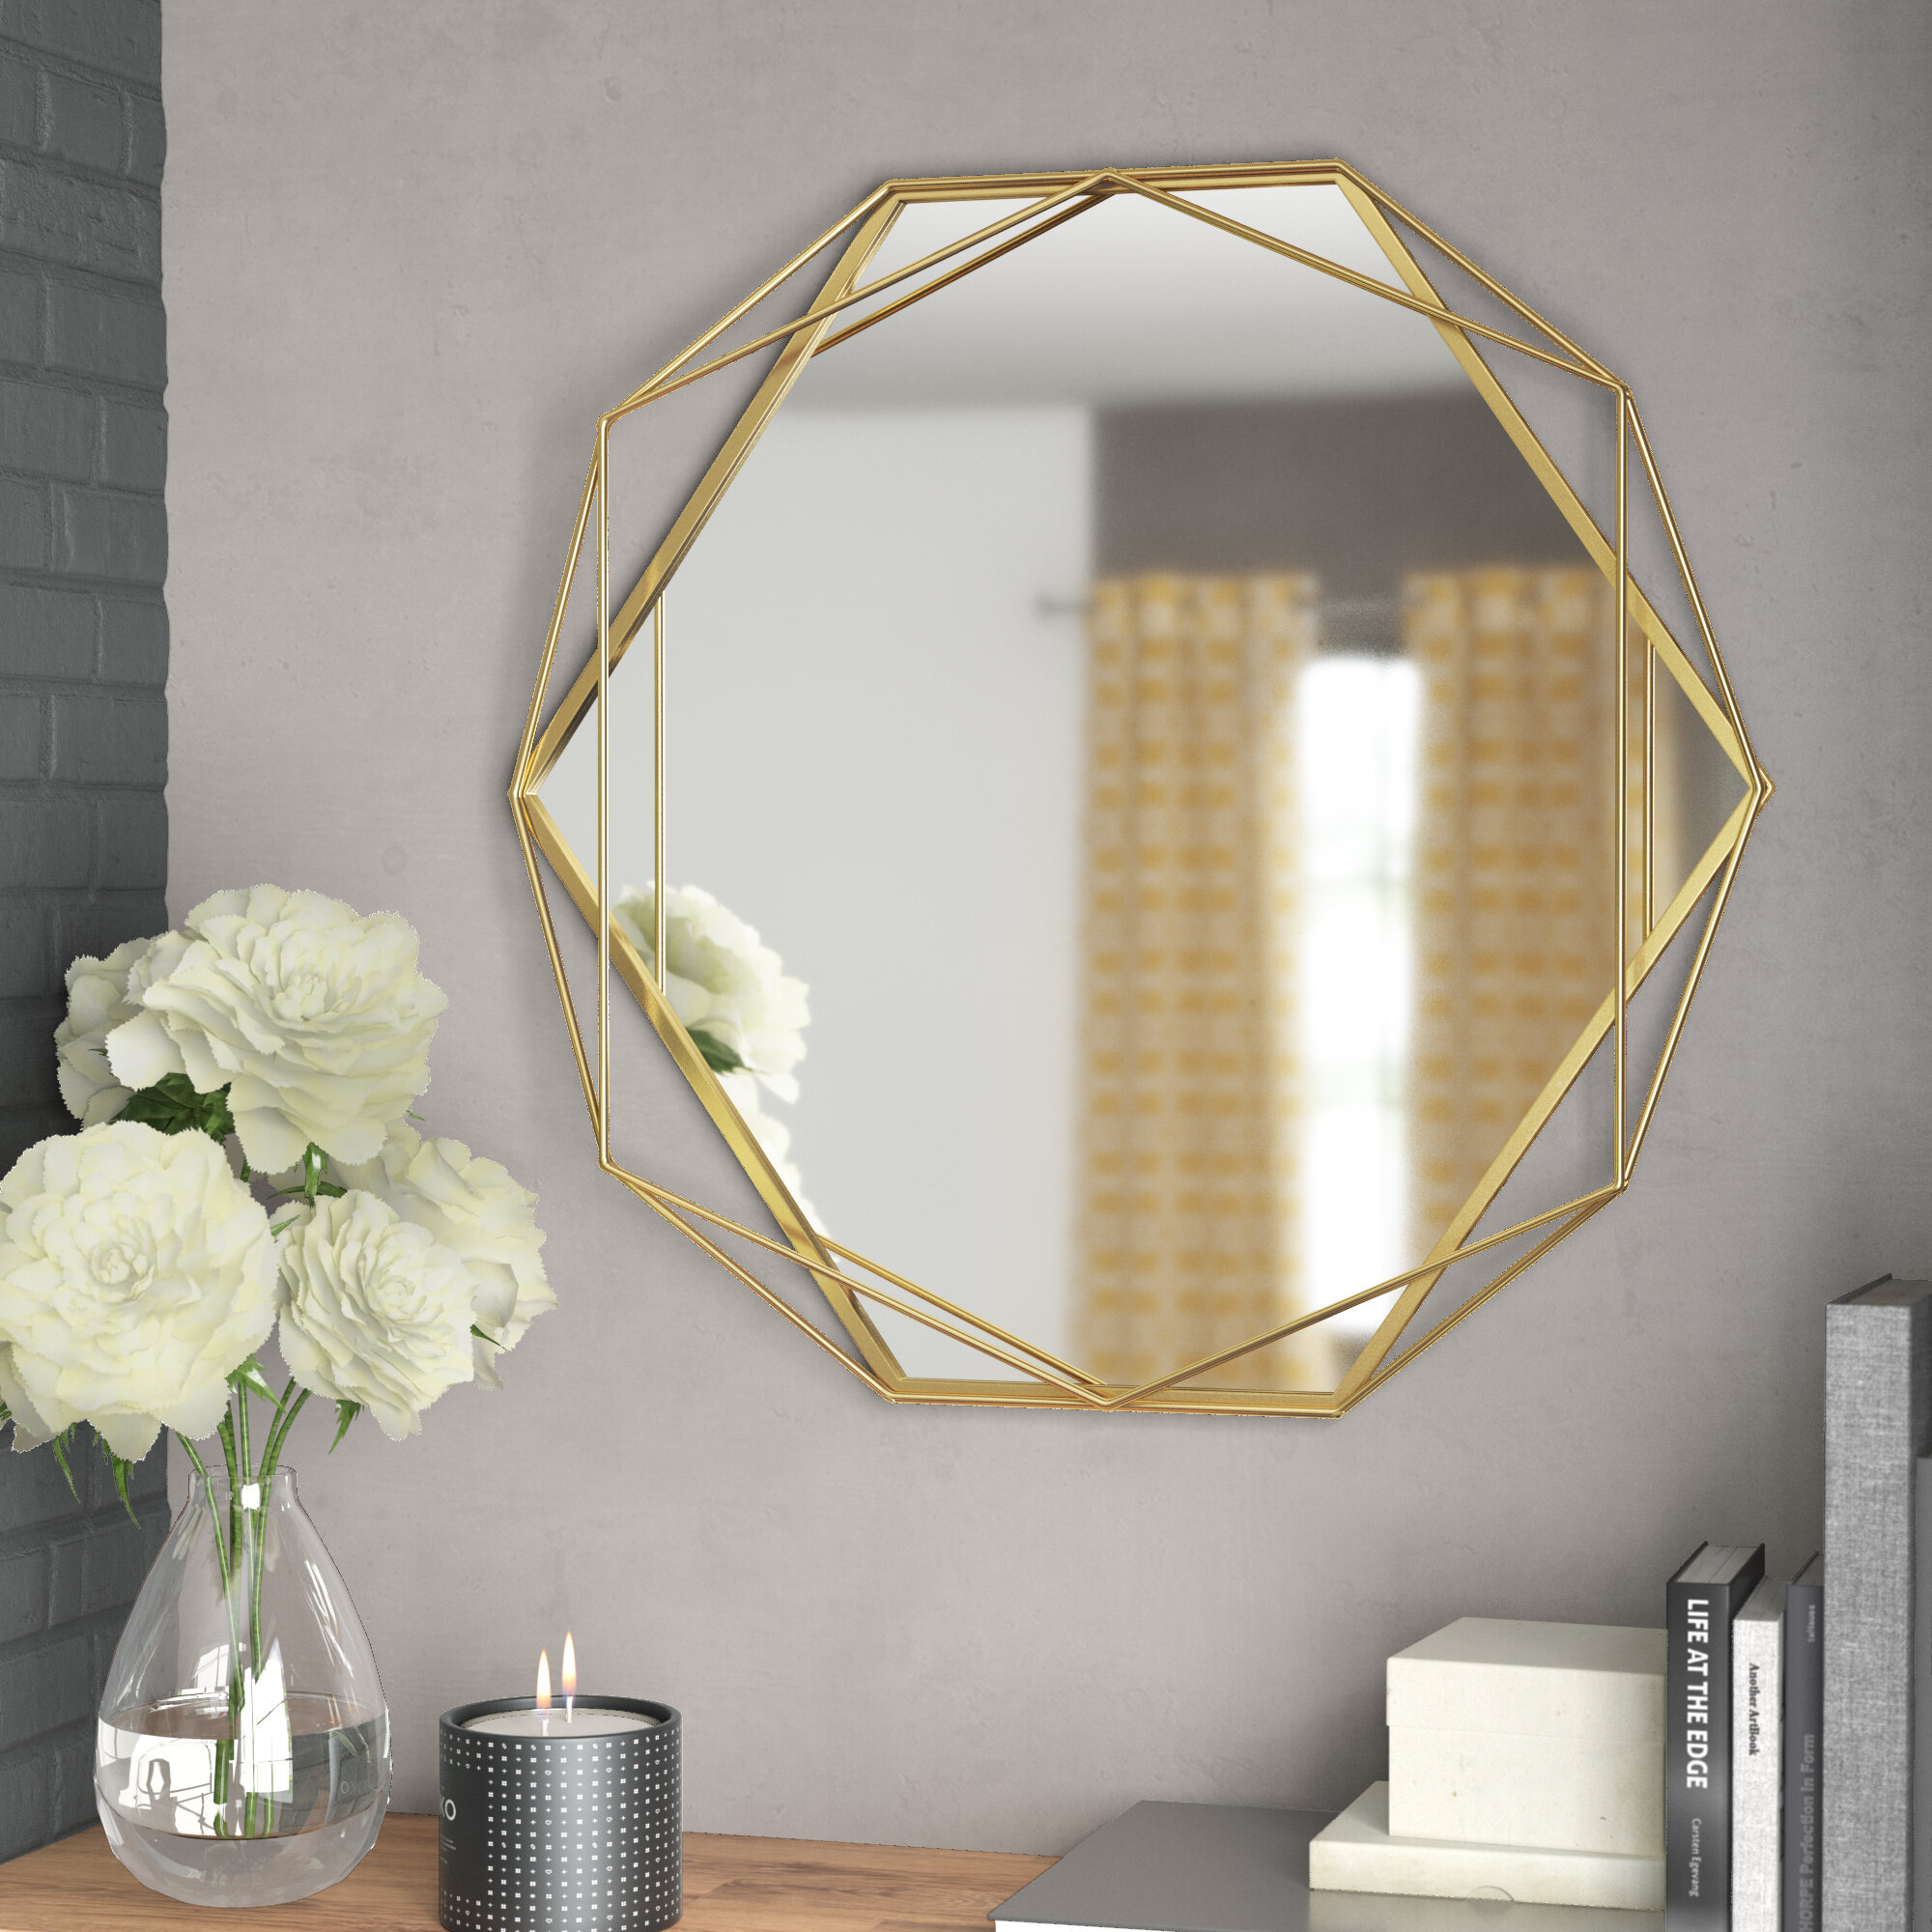 Fashionable Rings Wall Decor By Wrought Studio Throughout Wrought Studio Pippin Metal Frame Wall Mirror & Reviews (View 3 of 20)